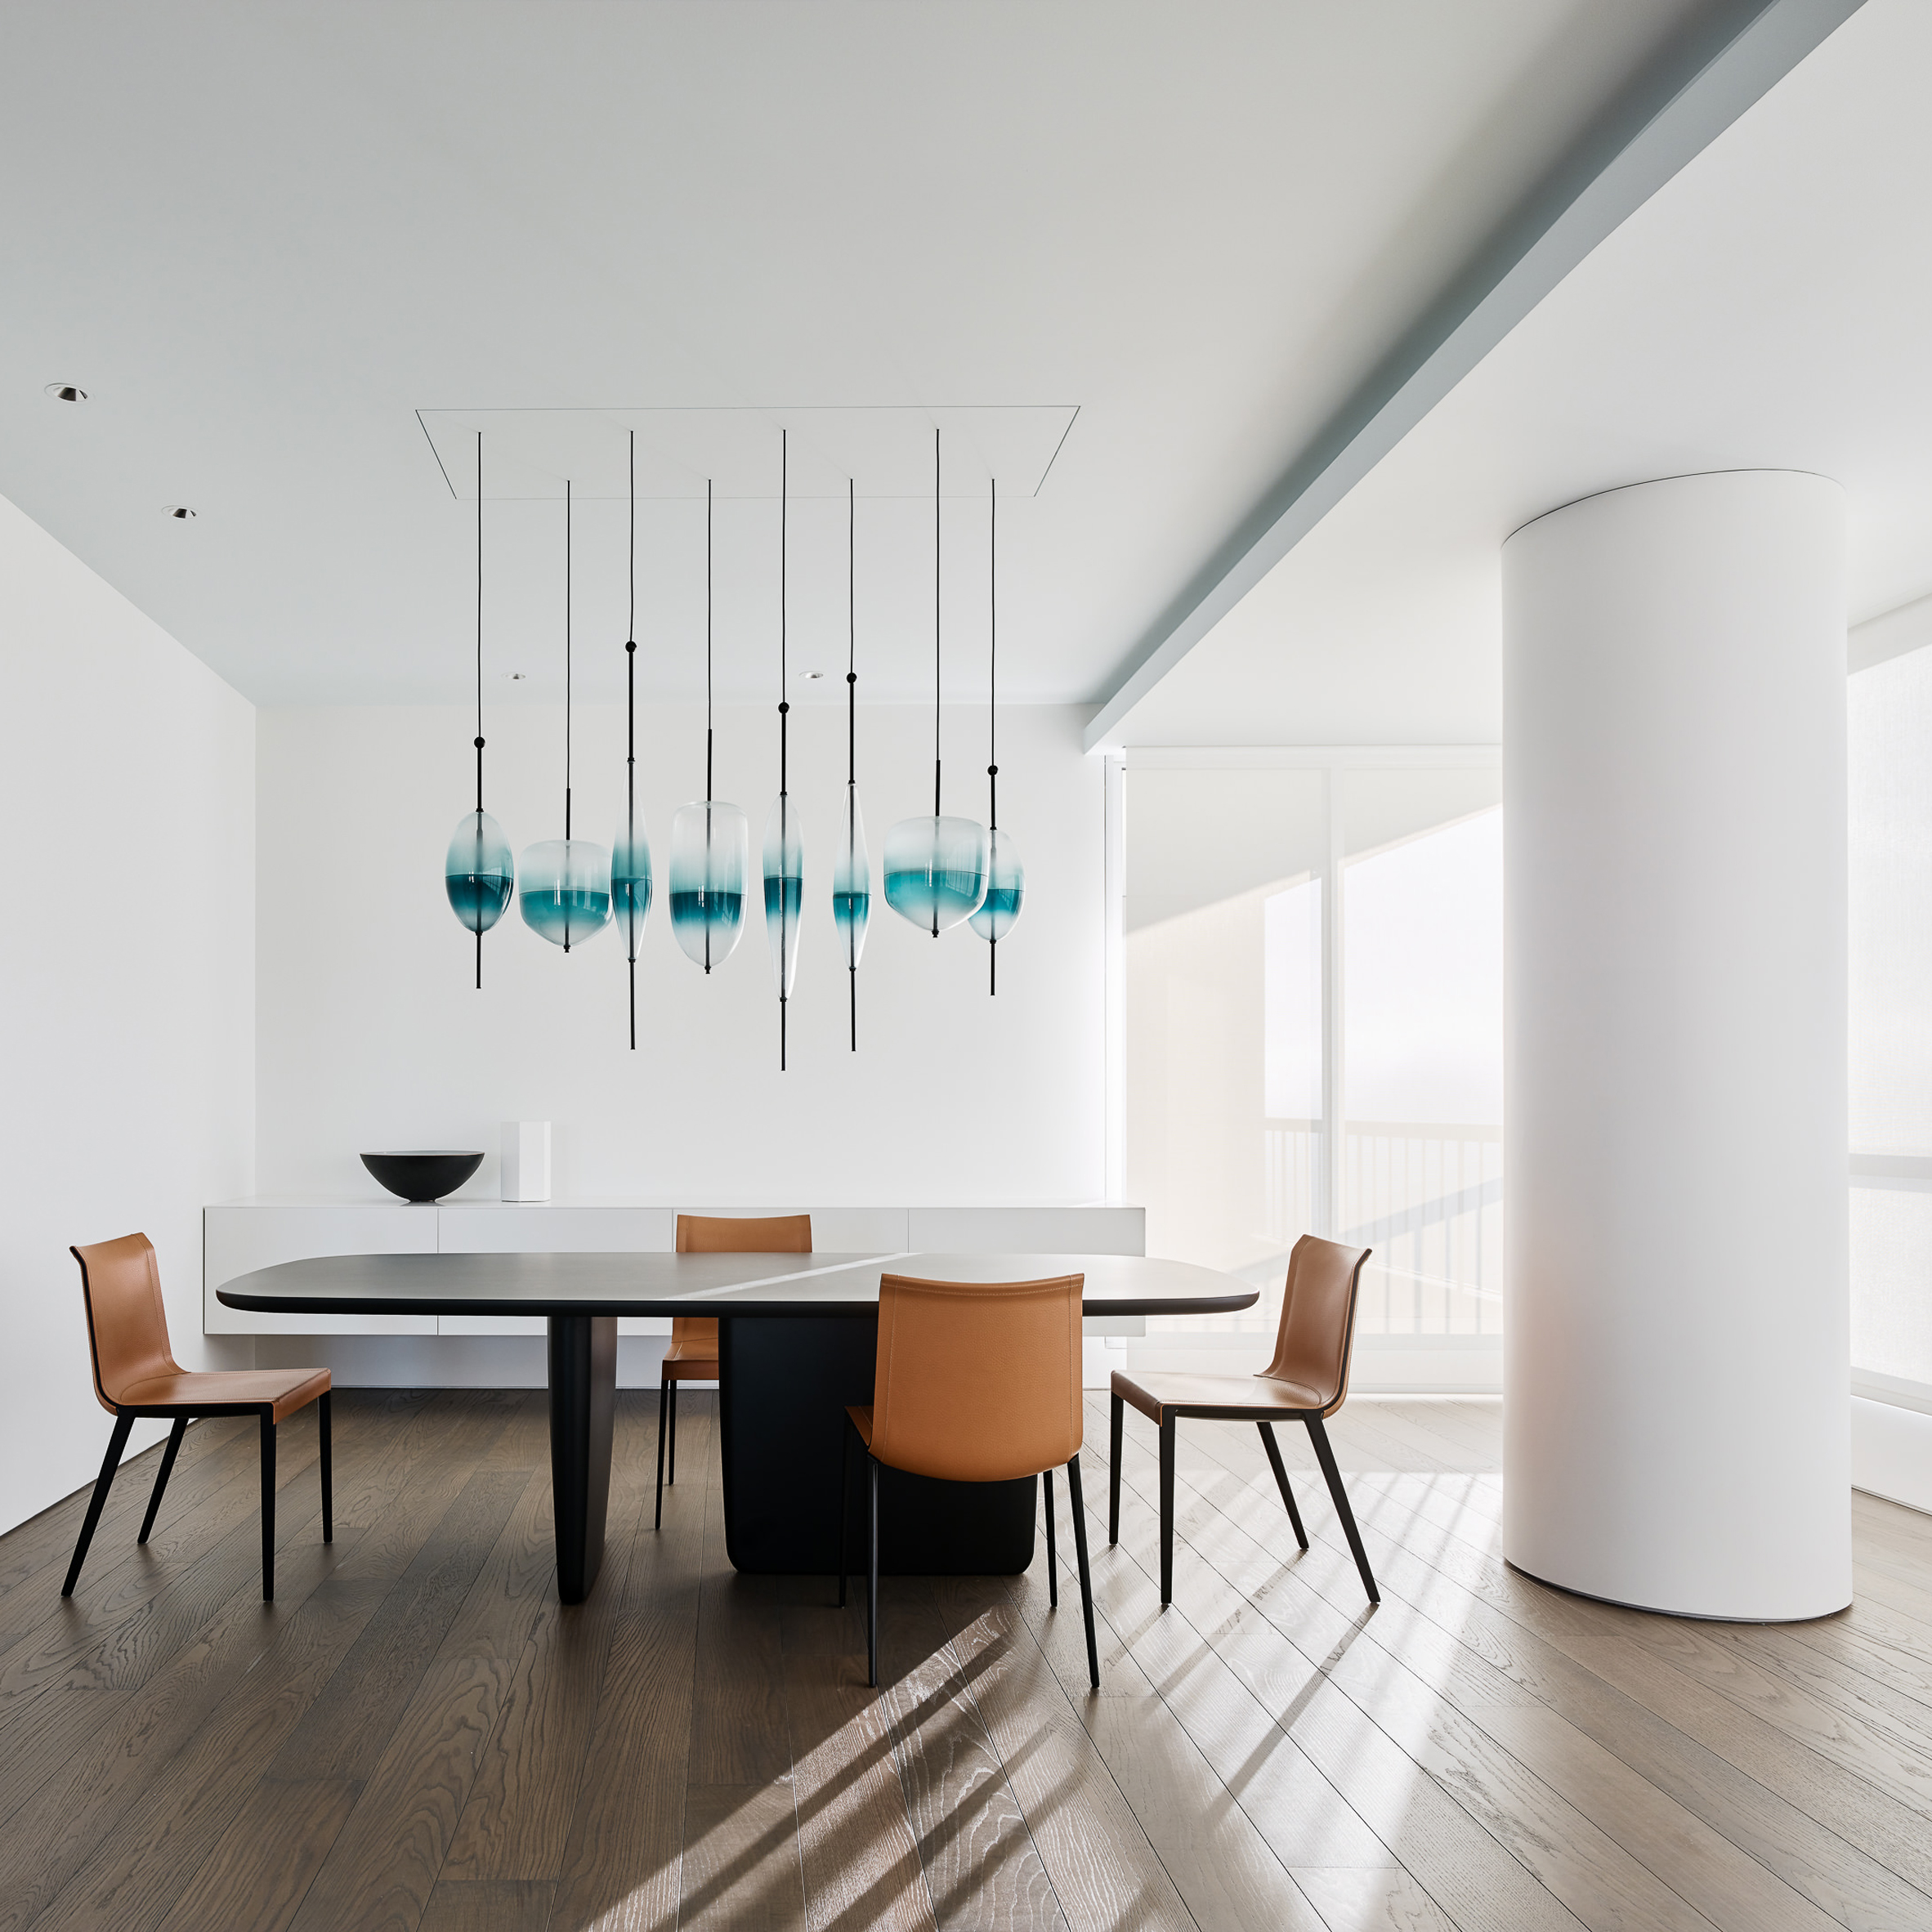 Interior Design Styles Explained: #6 Minimalist